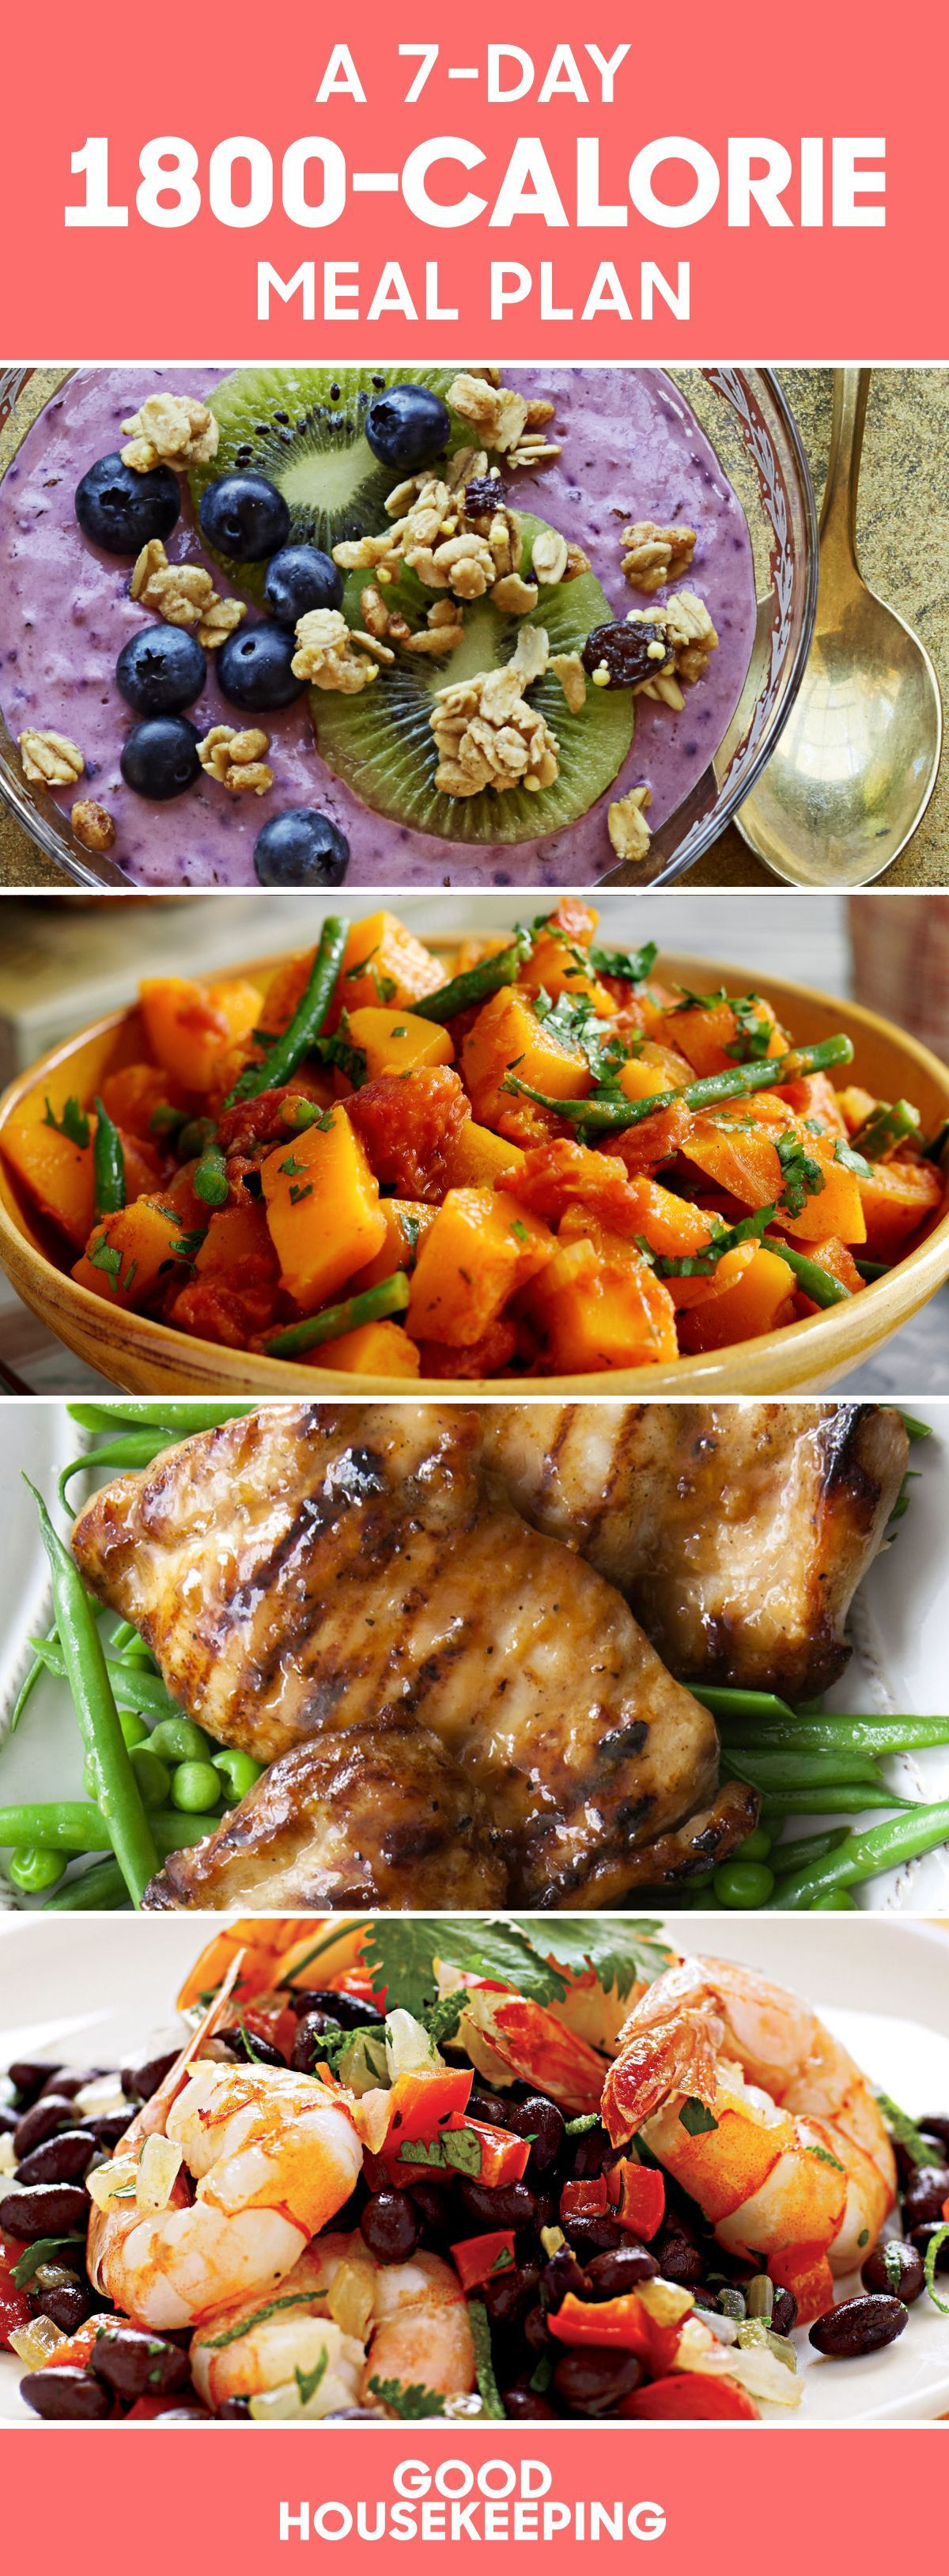 003 Simple Sample 1800 Calorie Meal Plan Pdf Highest Quality Full